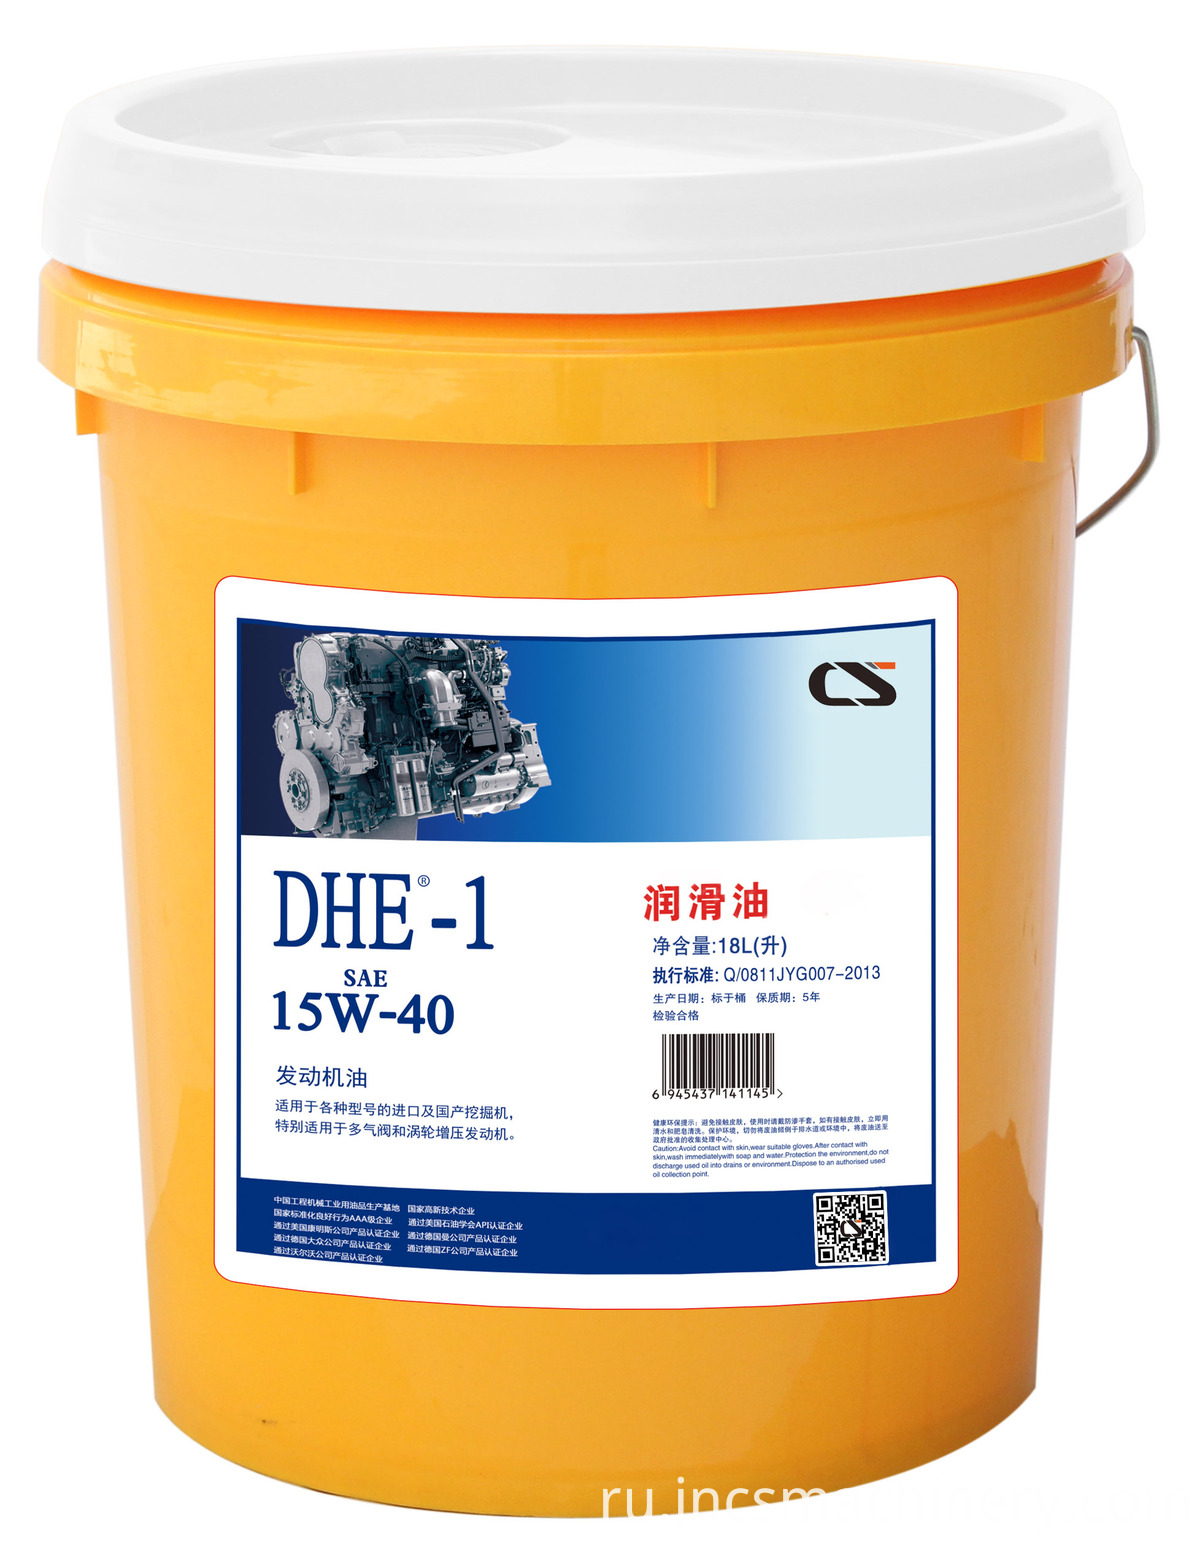 Engine oil DHE--1 SAE 15W-40